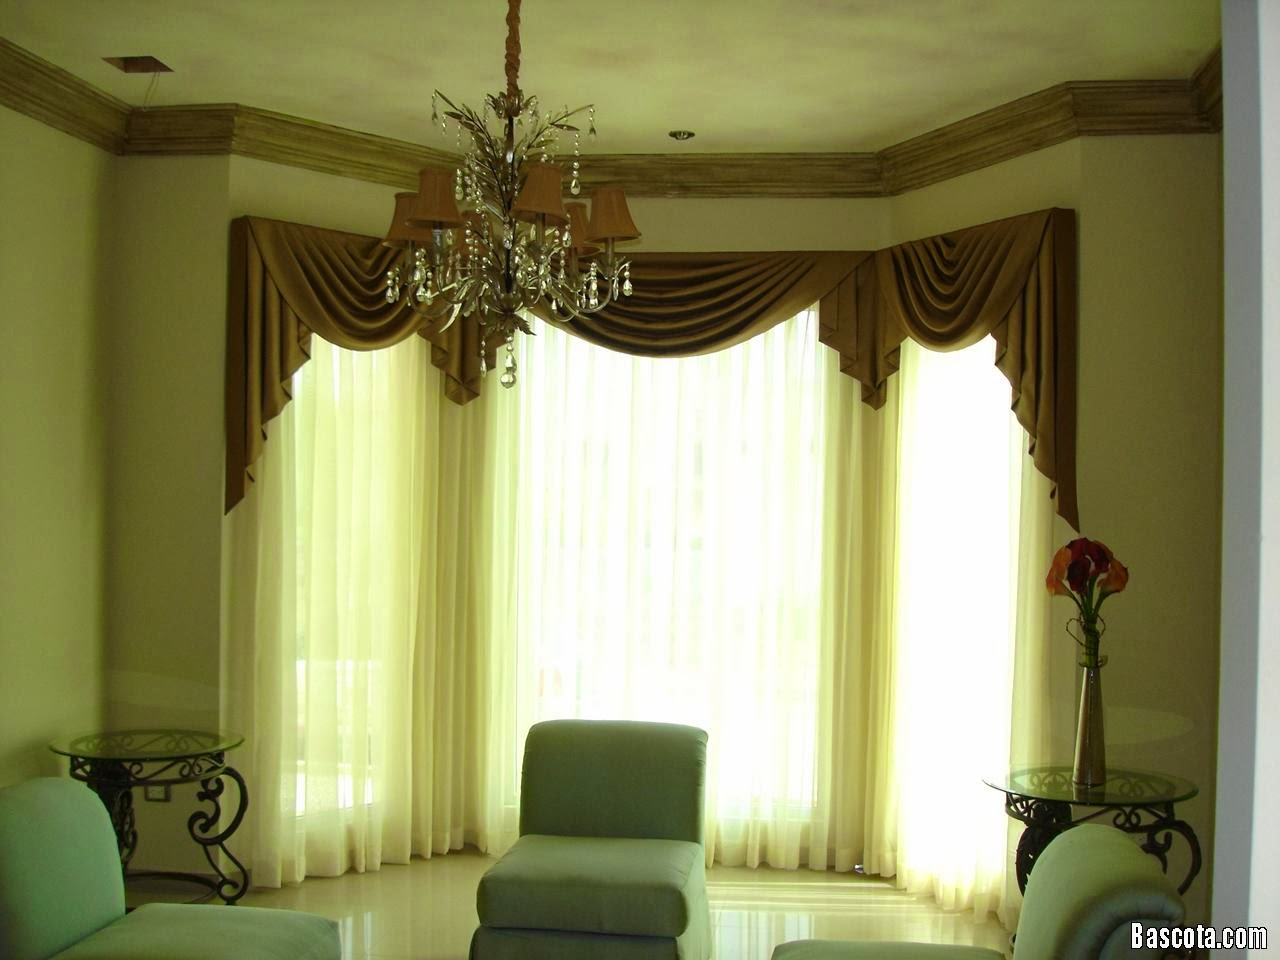 living room draperies ideas for window curtains for living room 2014 part 3 10561